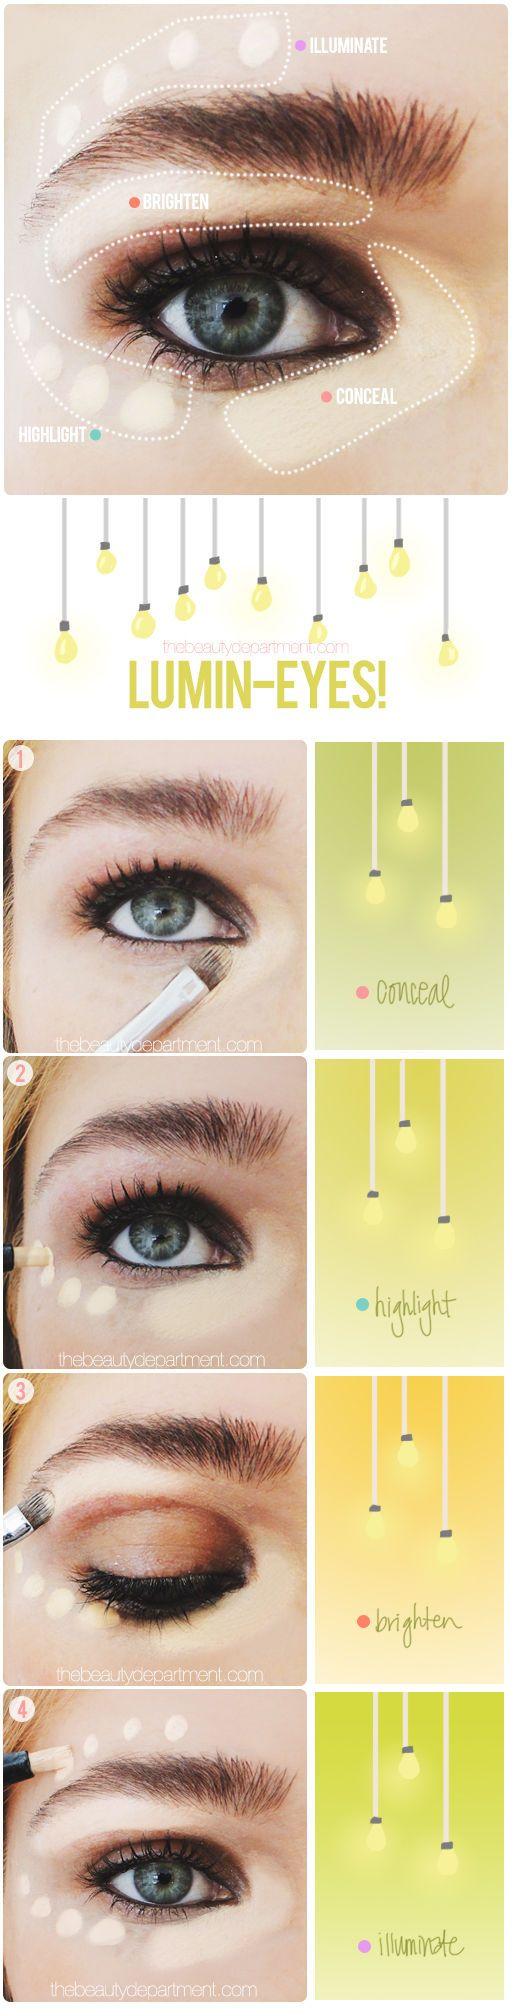 Own highlighter and concealer? Here's how to use them to brighten your eyes....